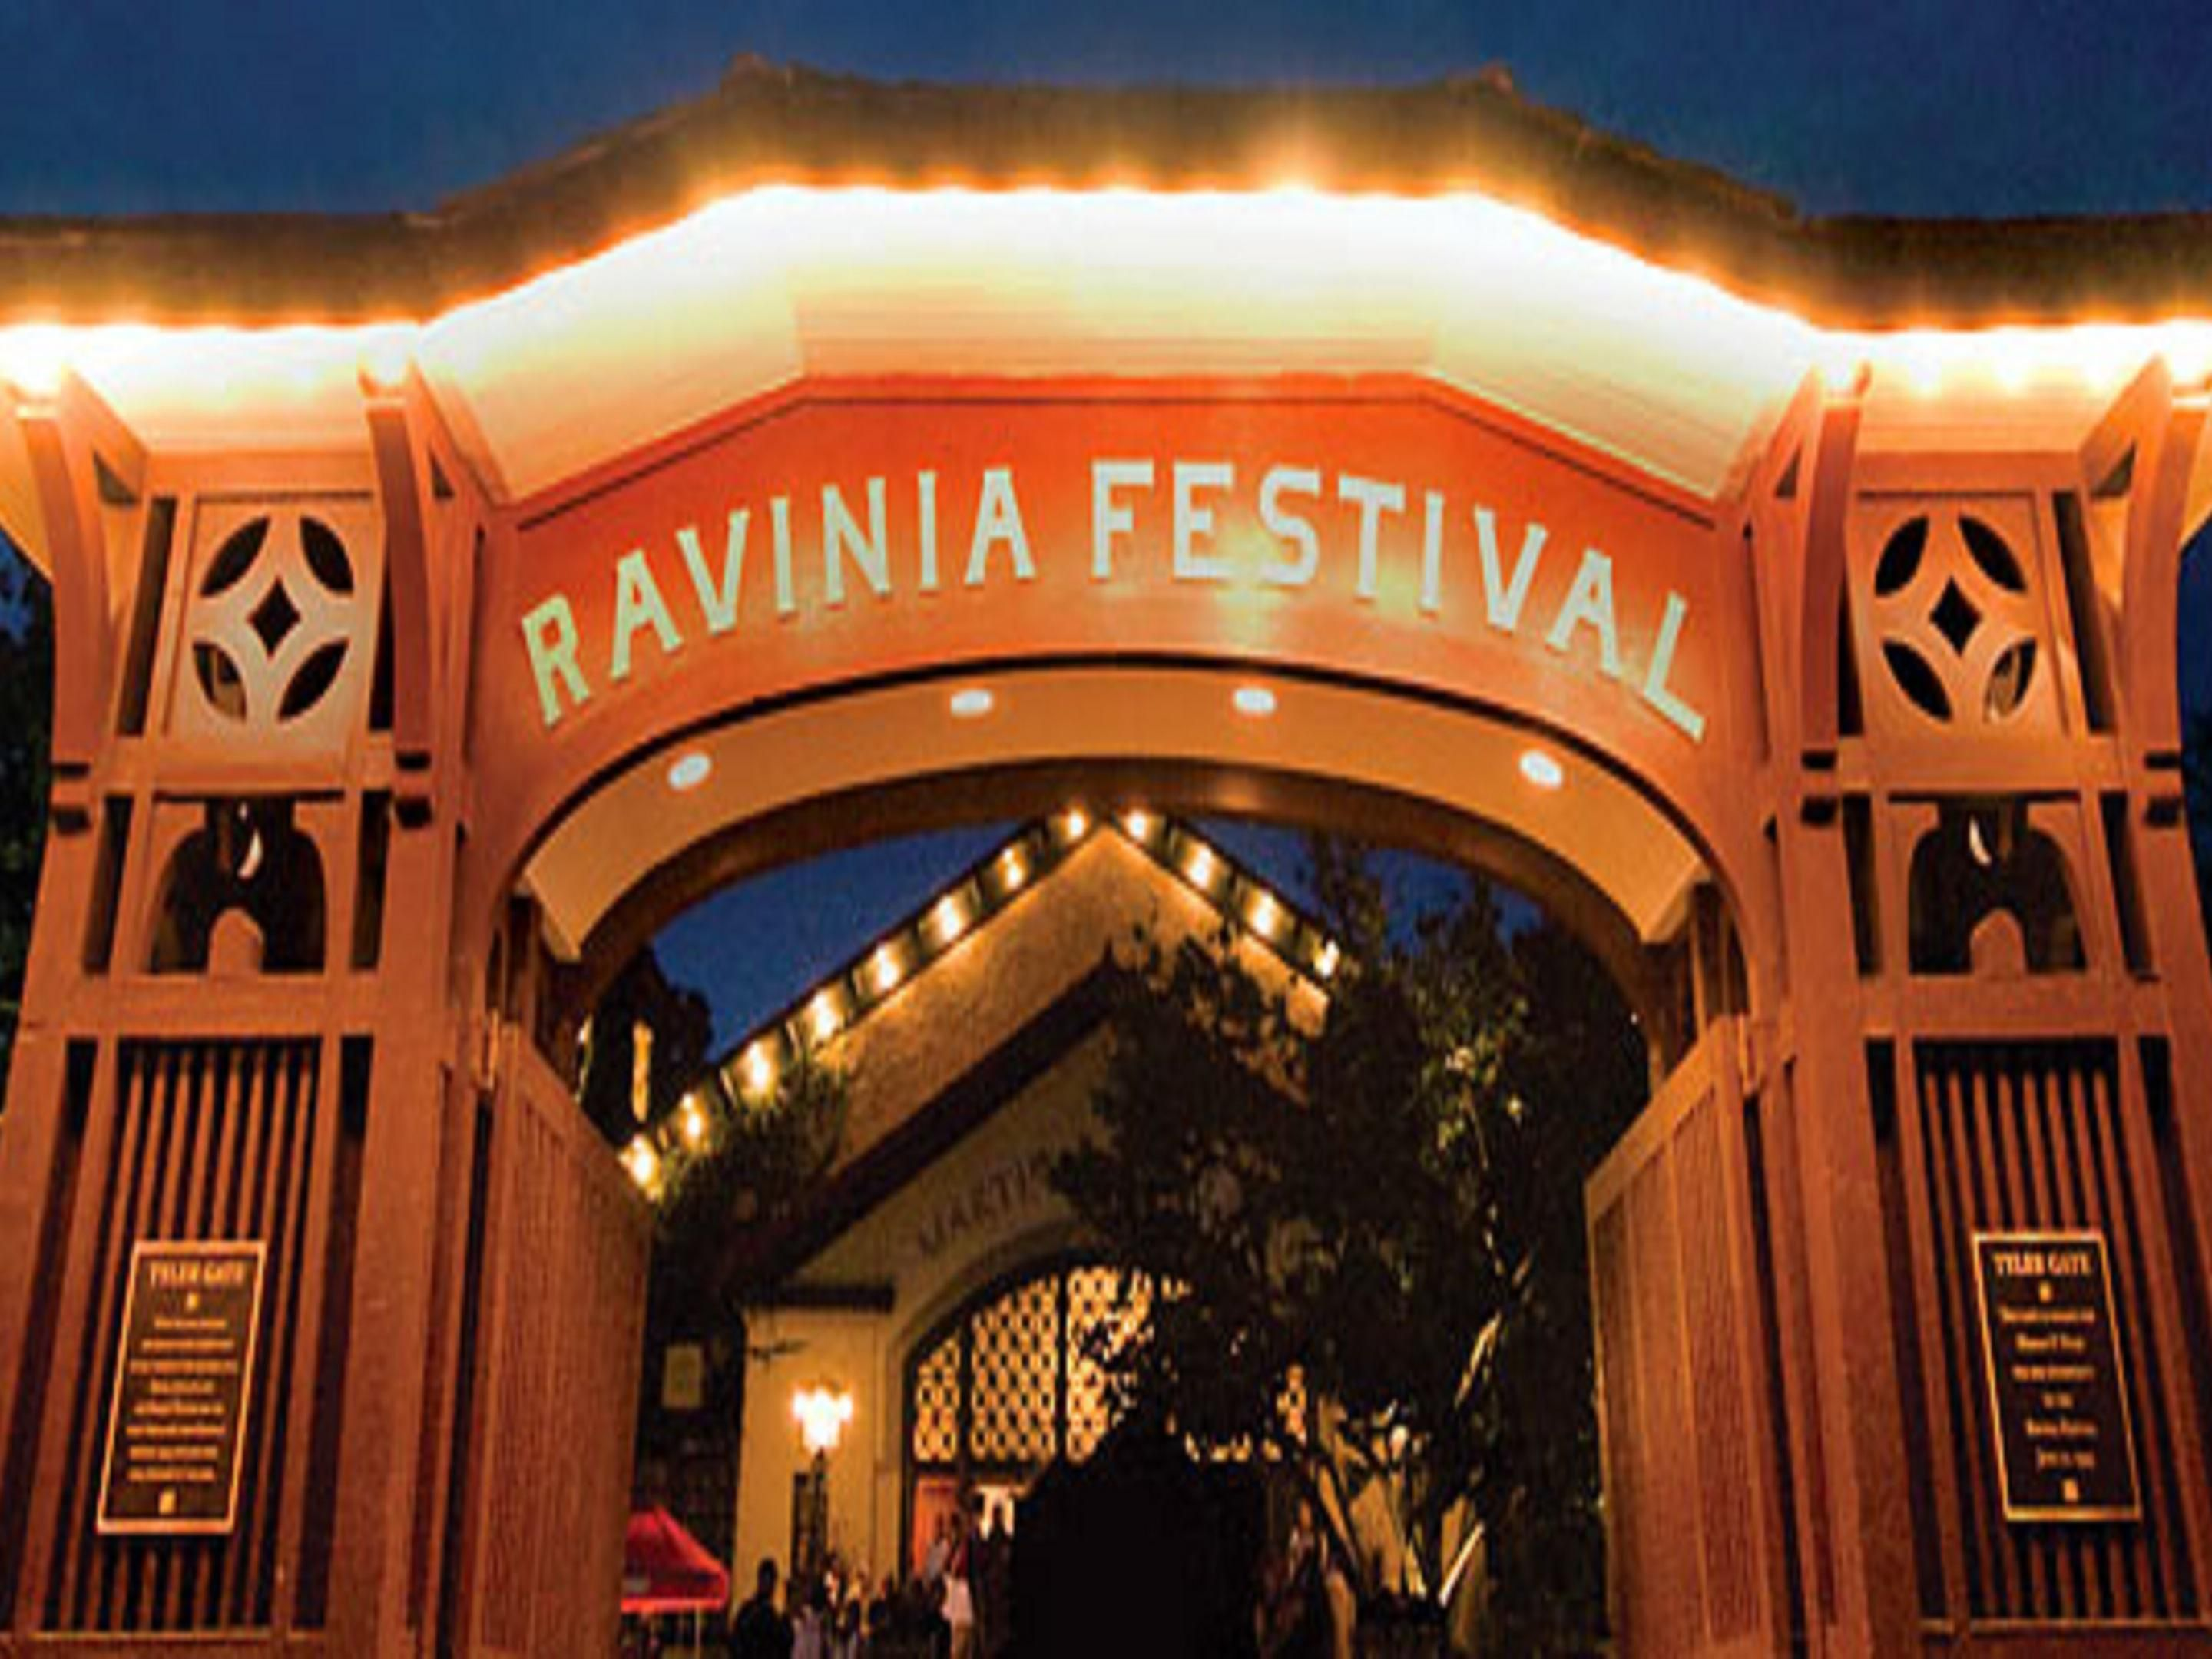 Listen to great live bands at Ravinia Festival